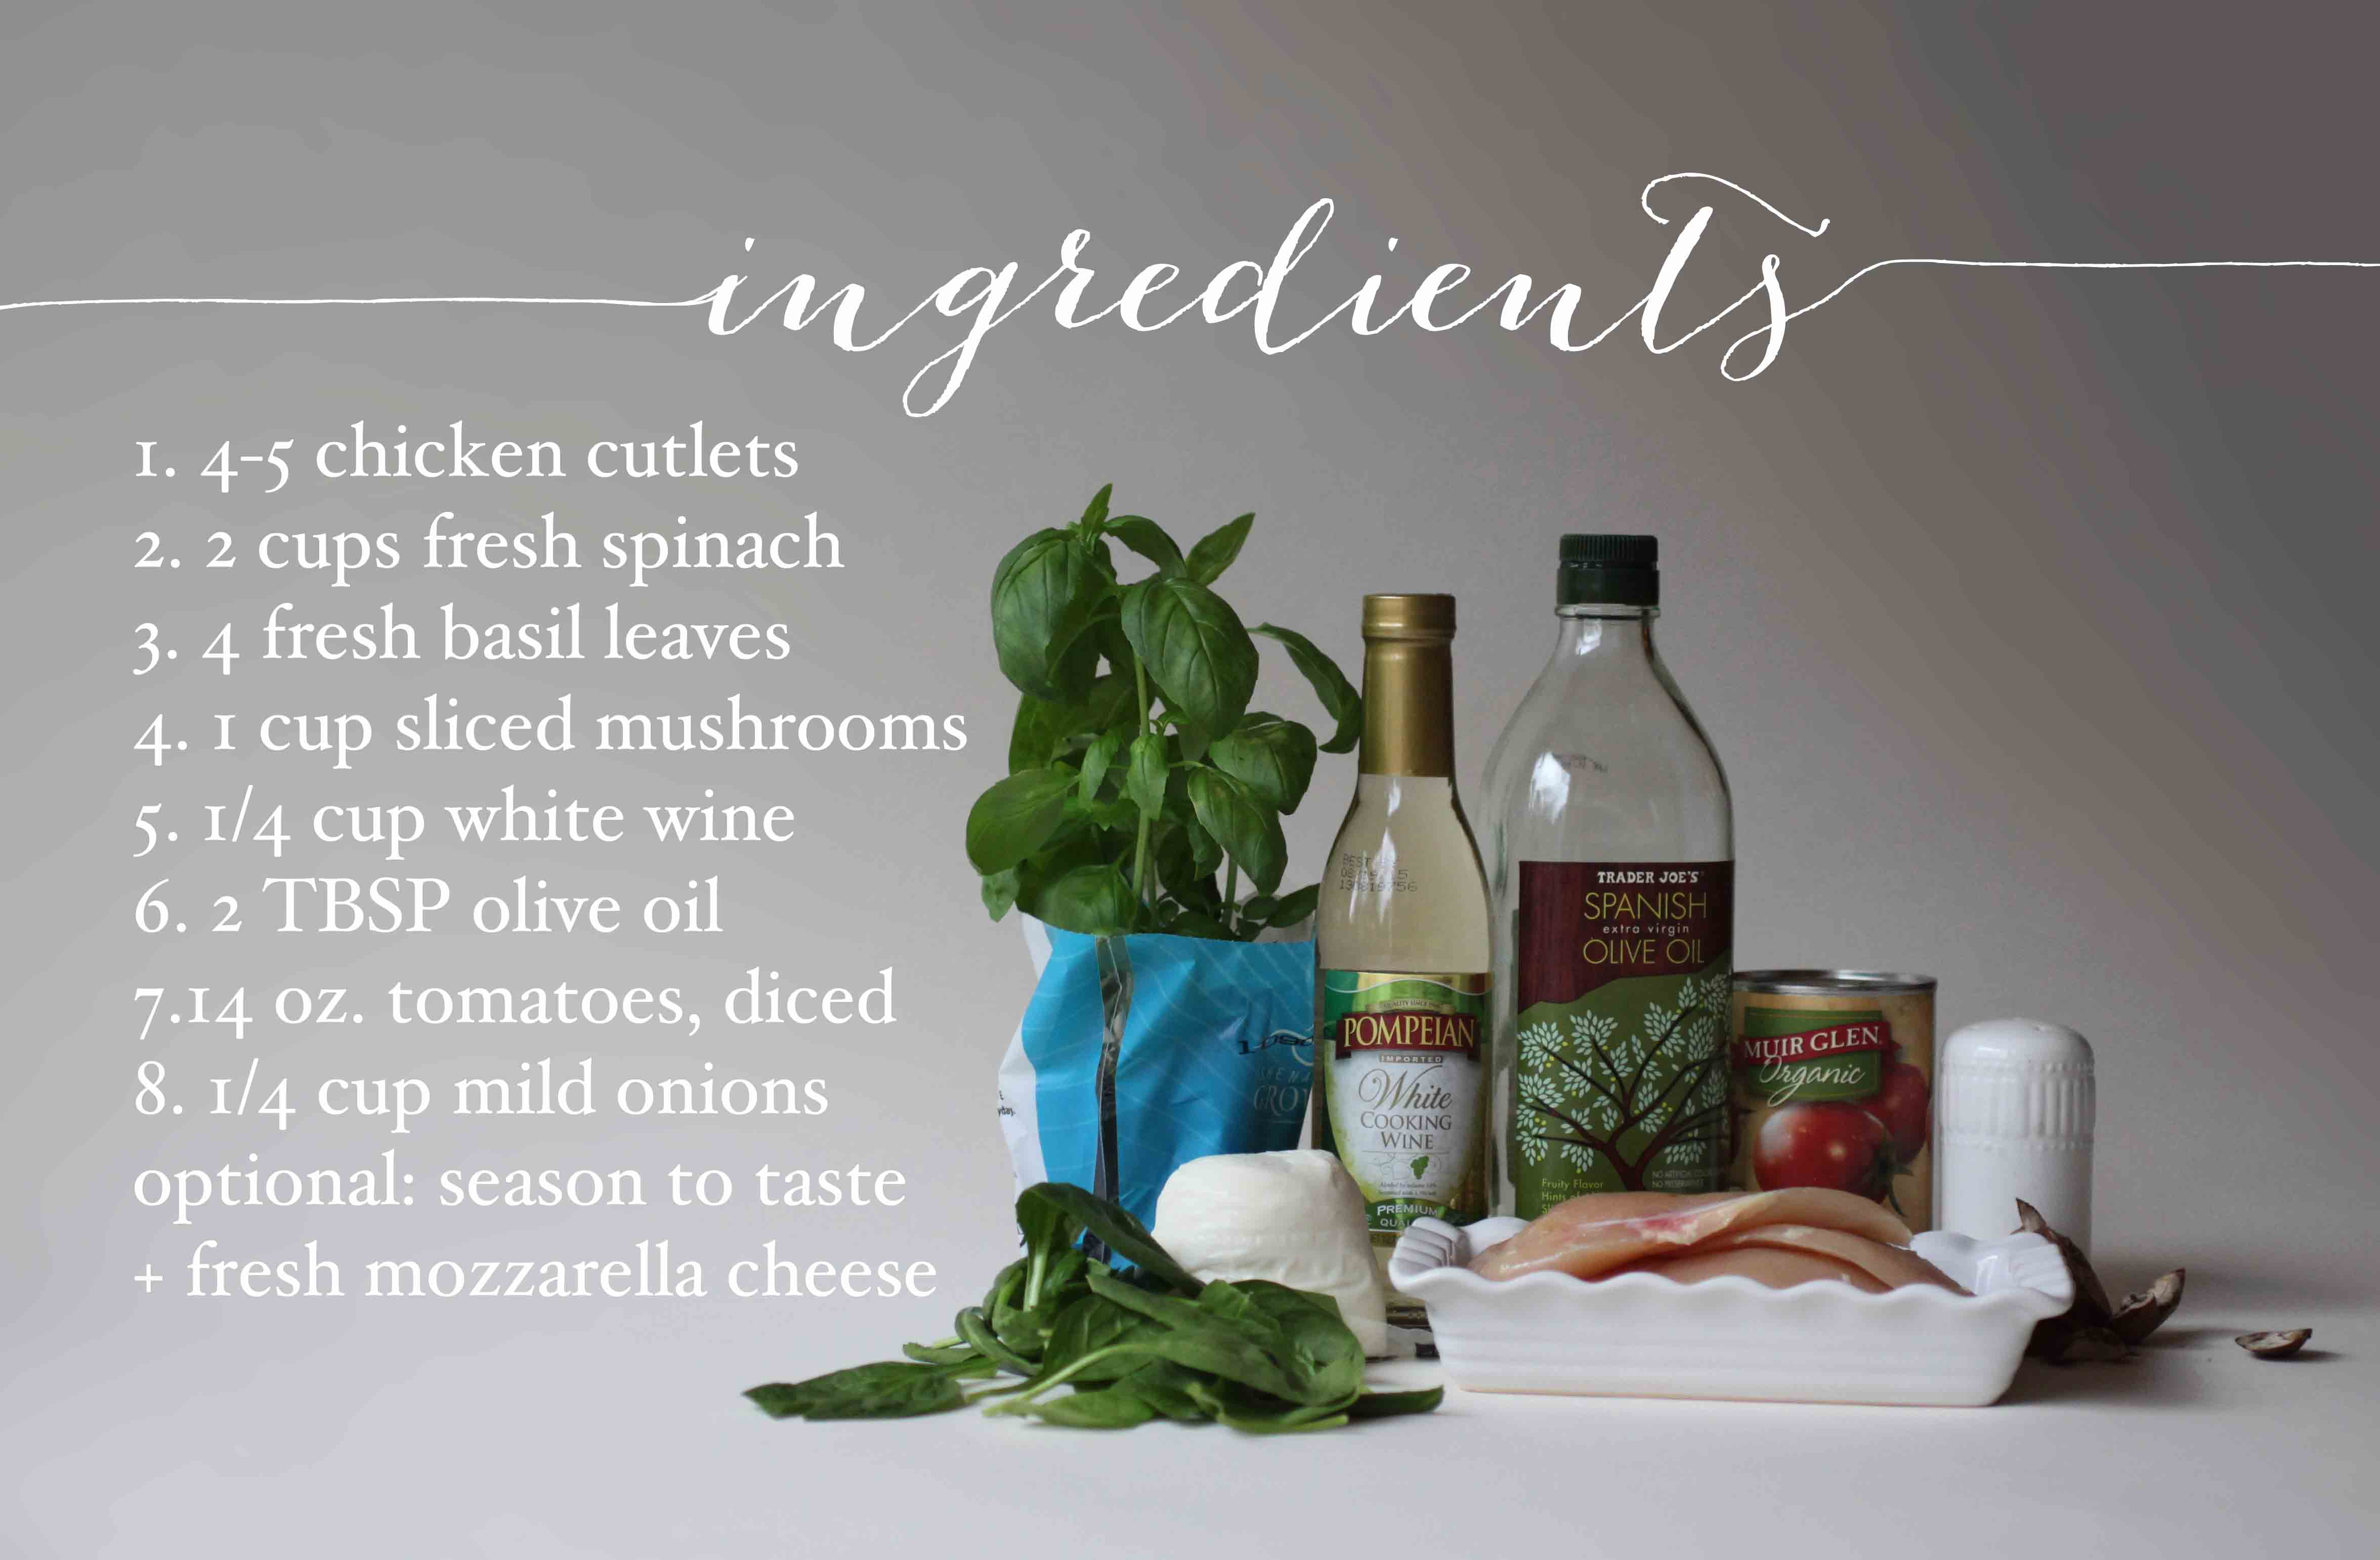 ingredients-to-make-tuscan-chicken-could-be-a-paleo-recipe-with-alterations-b